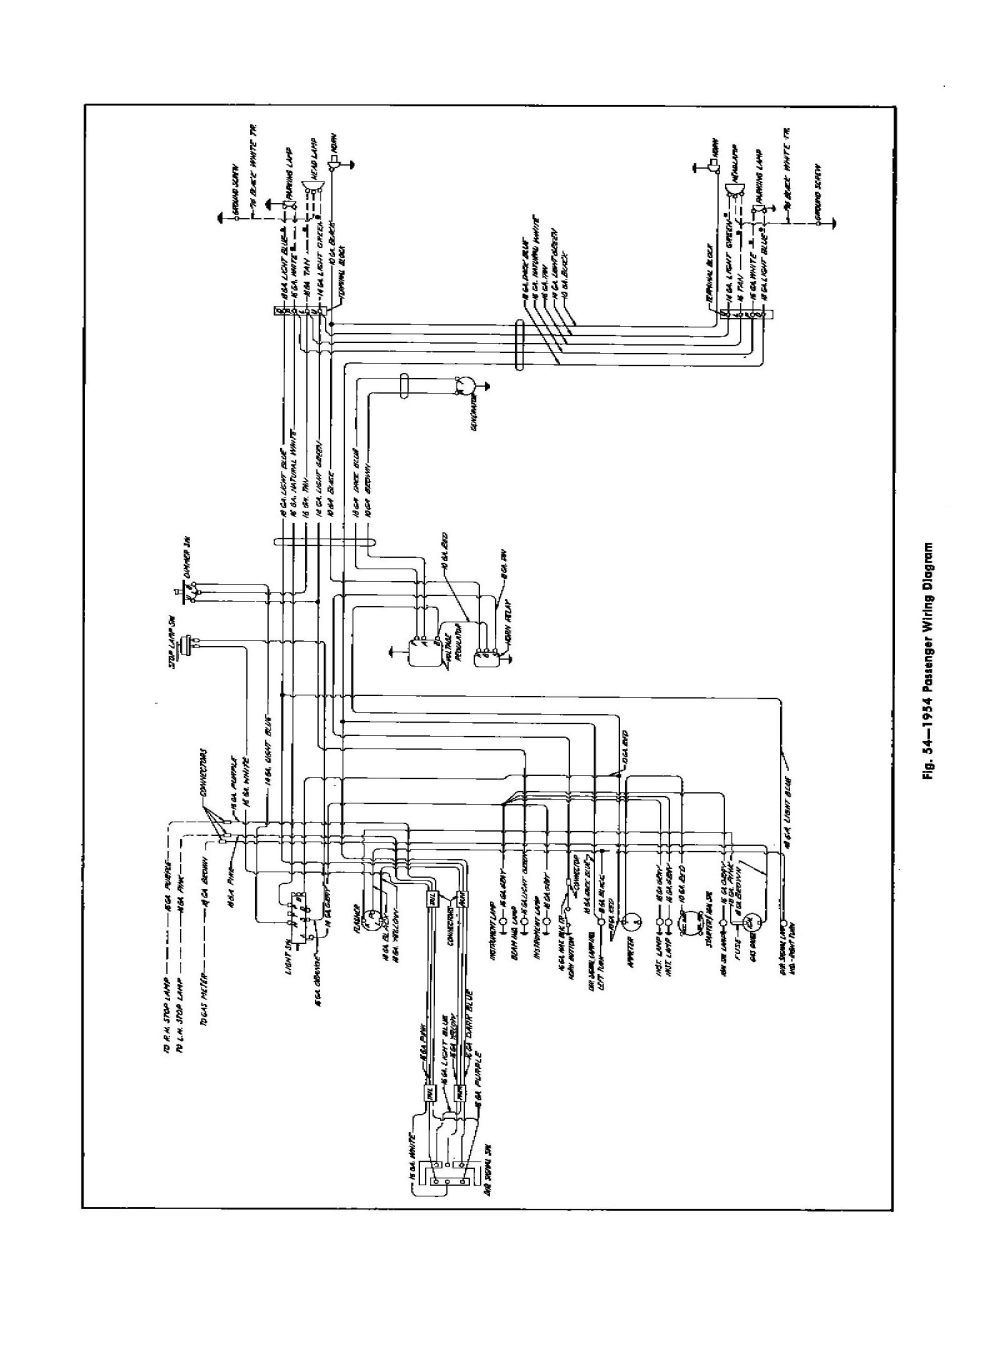 medium resolution of chevy wiring diagrams 1977 corvette wiring diagram 1954 corvette wiring diagram